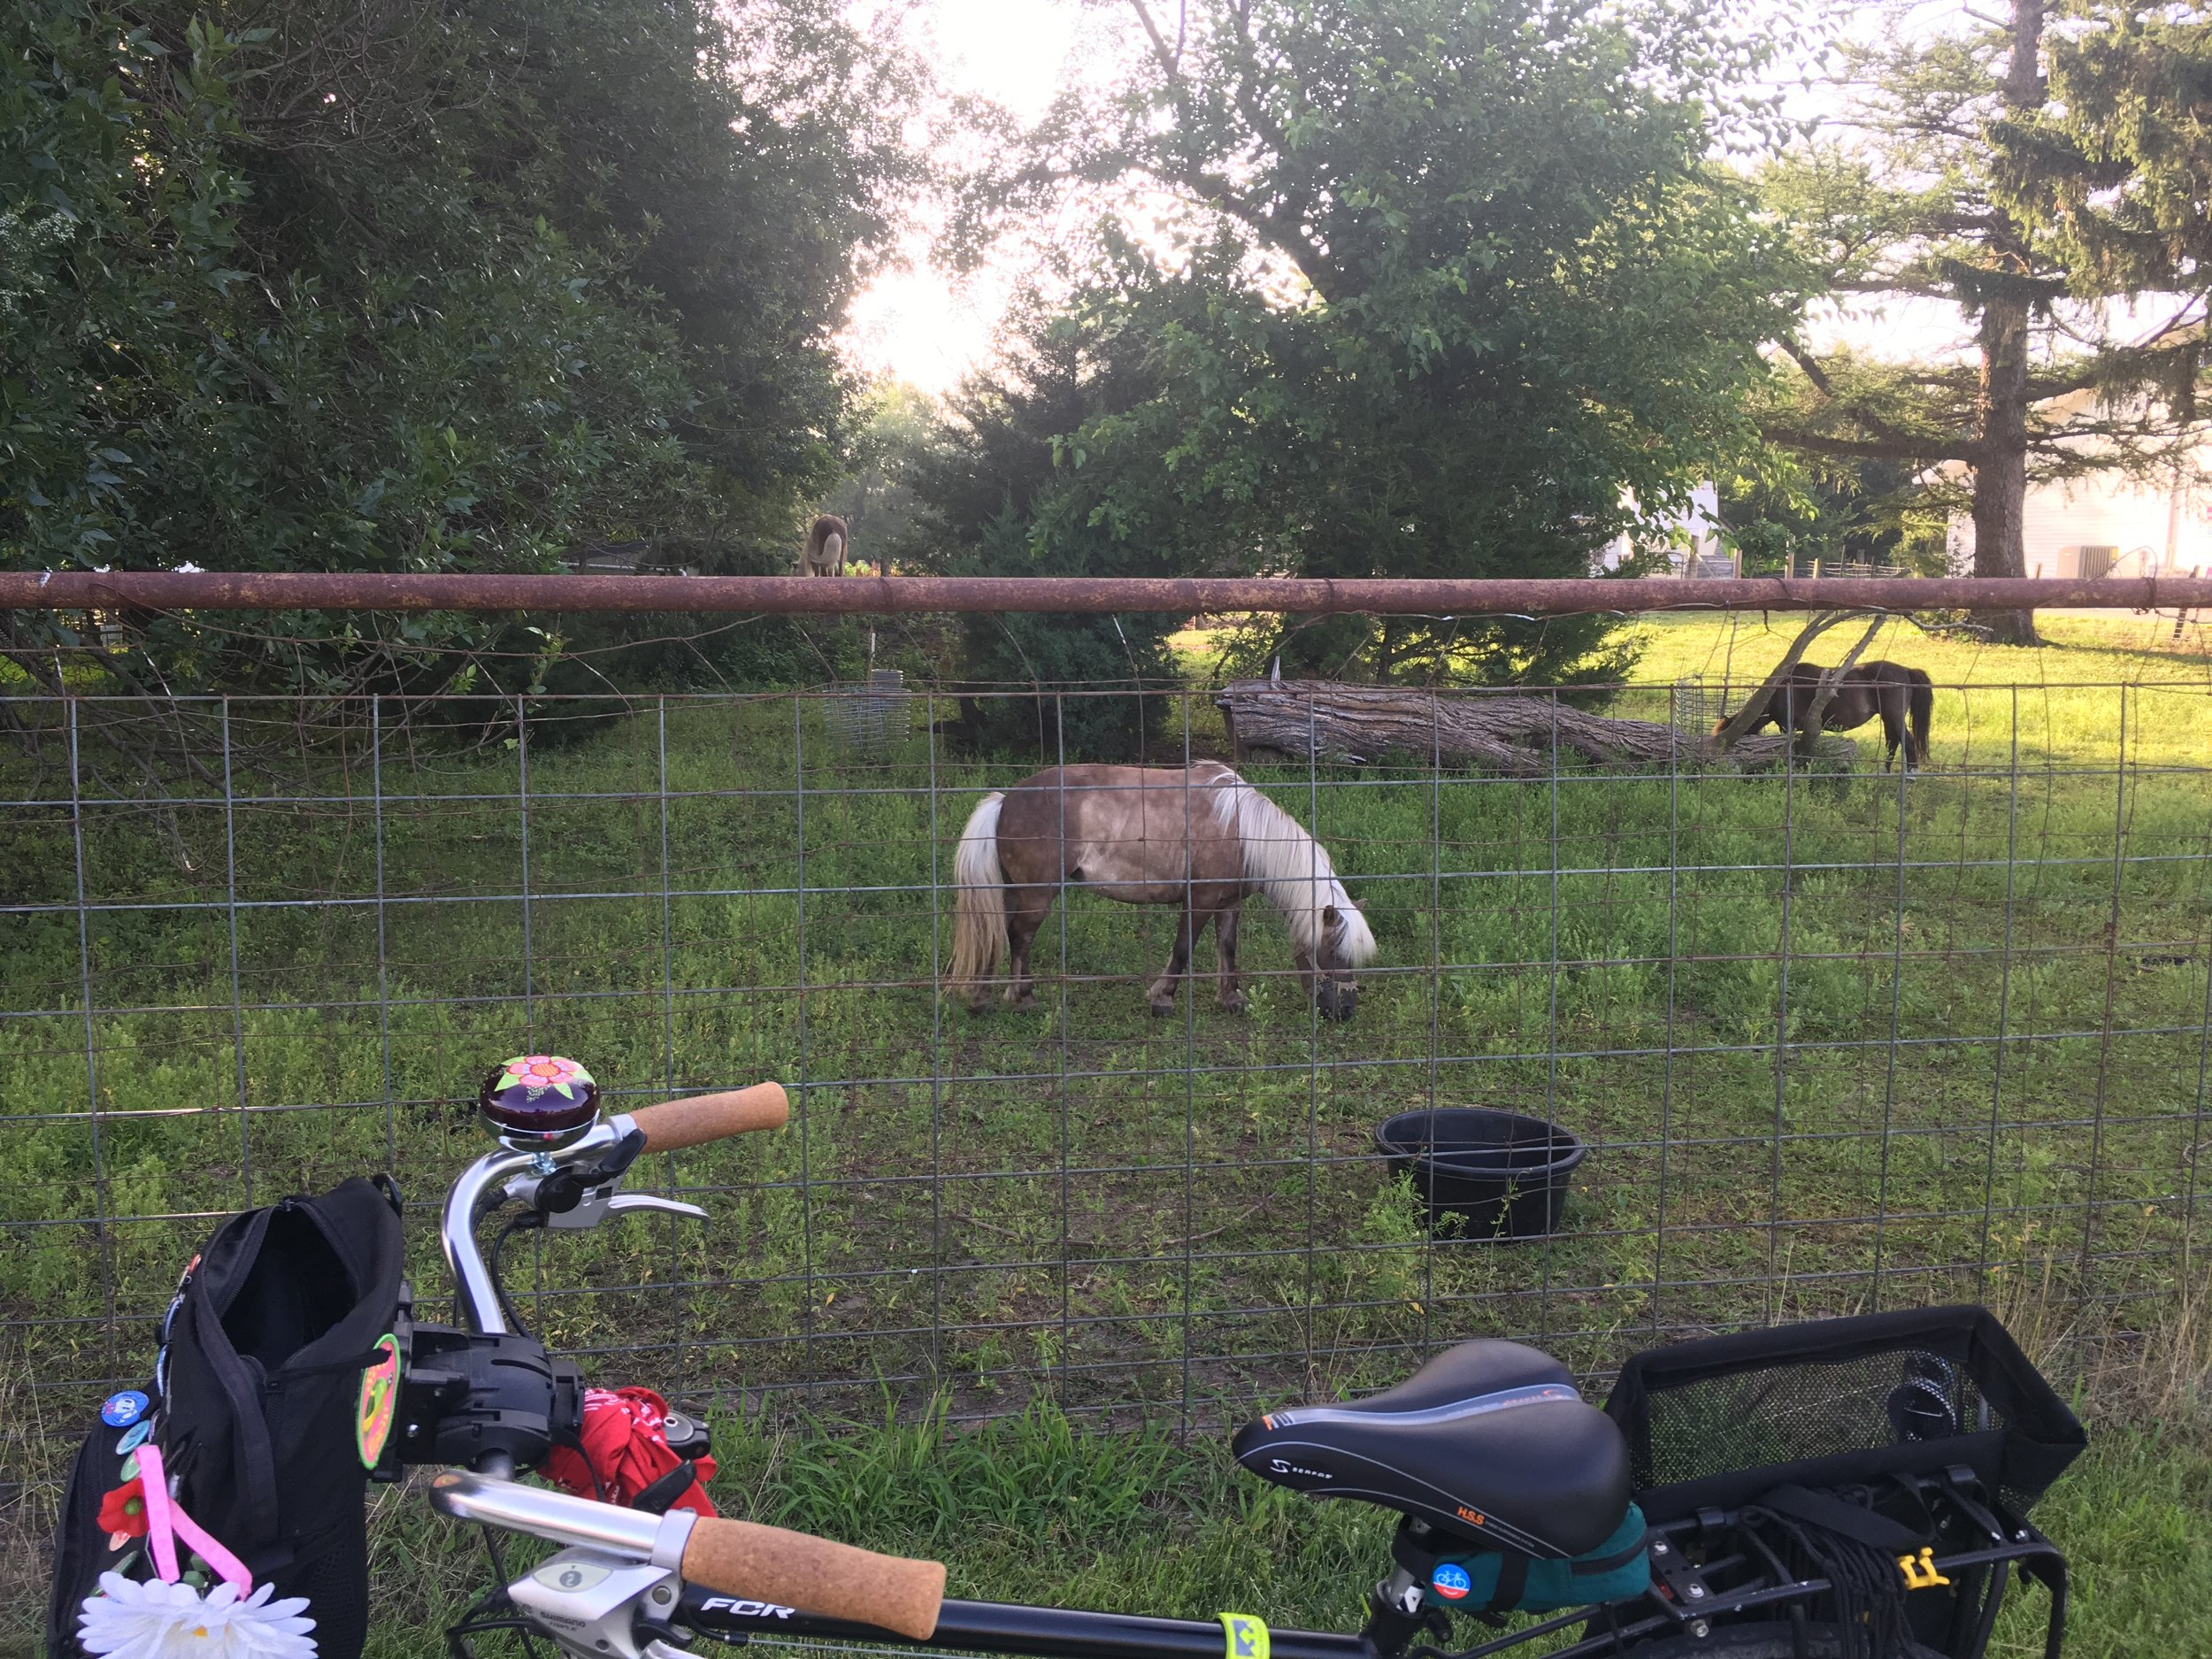 Just took one picture on this ride around town.  Stopped to say hello to the grandfathered town ponies.  I was ignored.